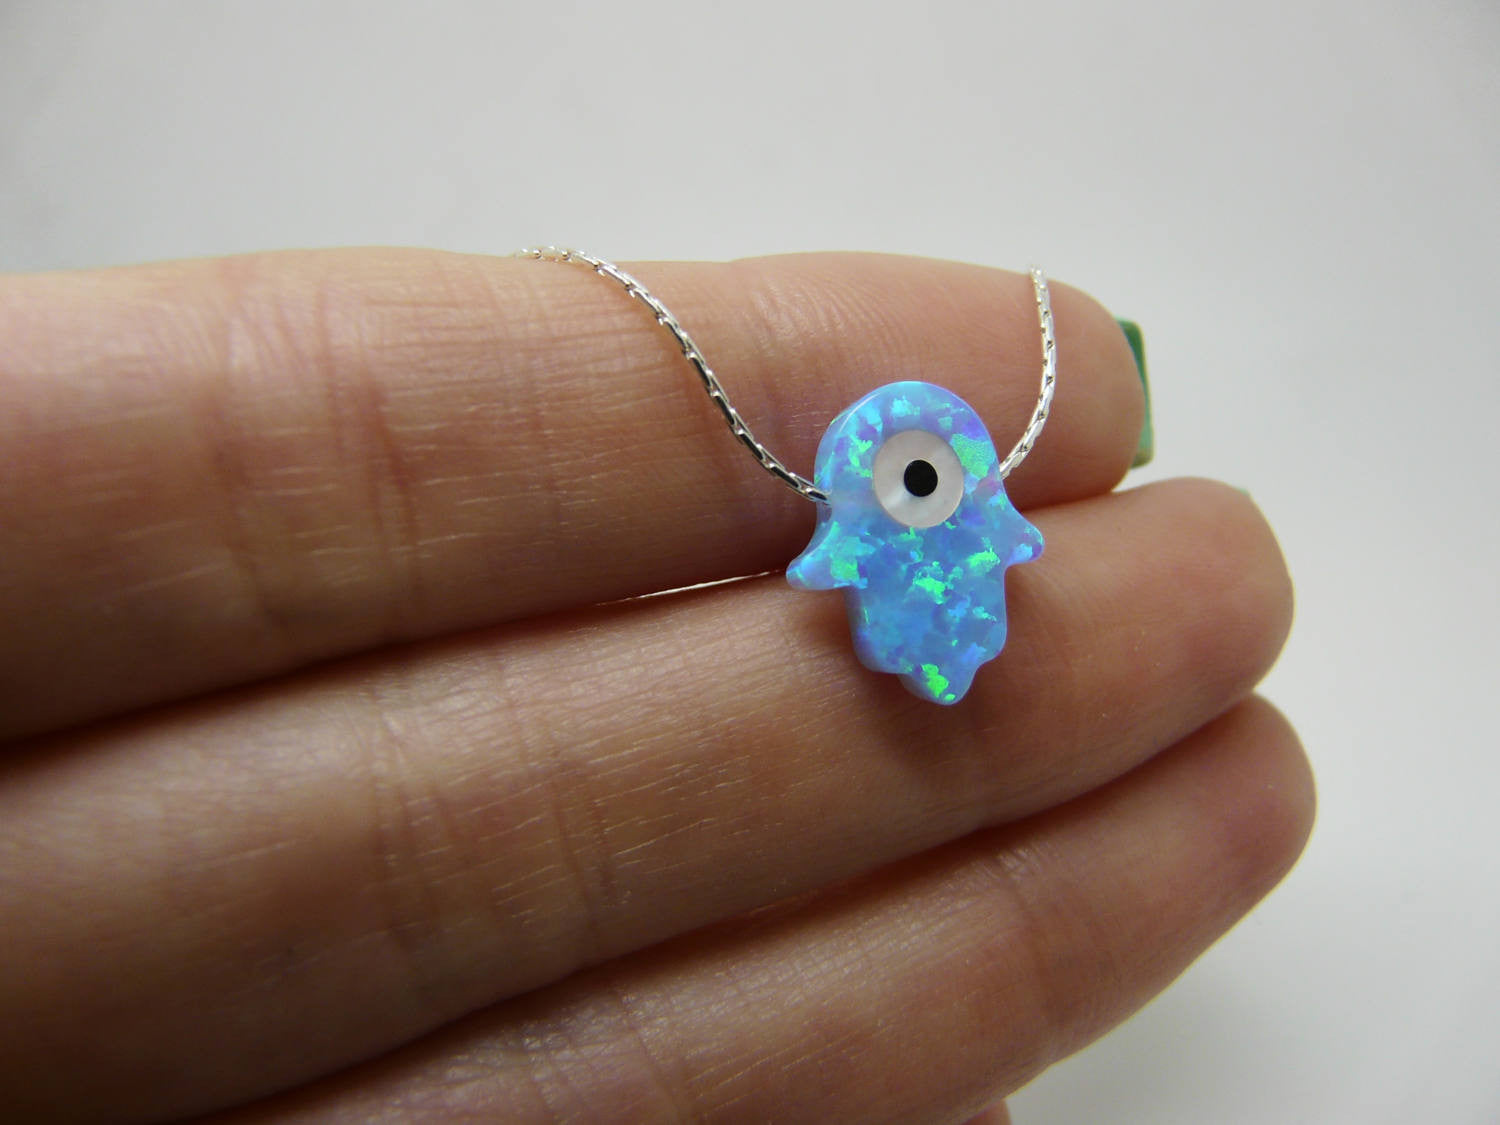 Hamsa evil eye necklace - OpaLandJewelry